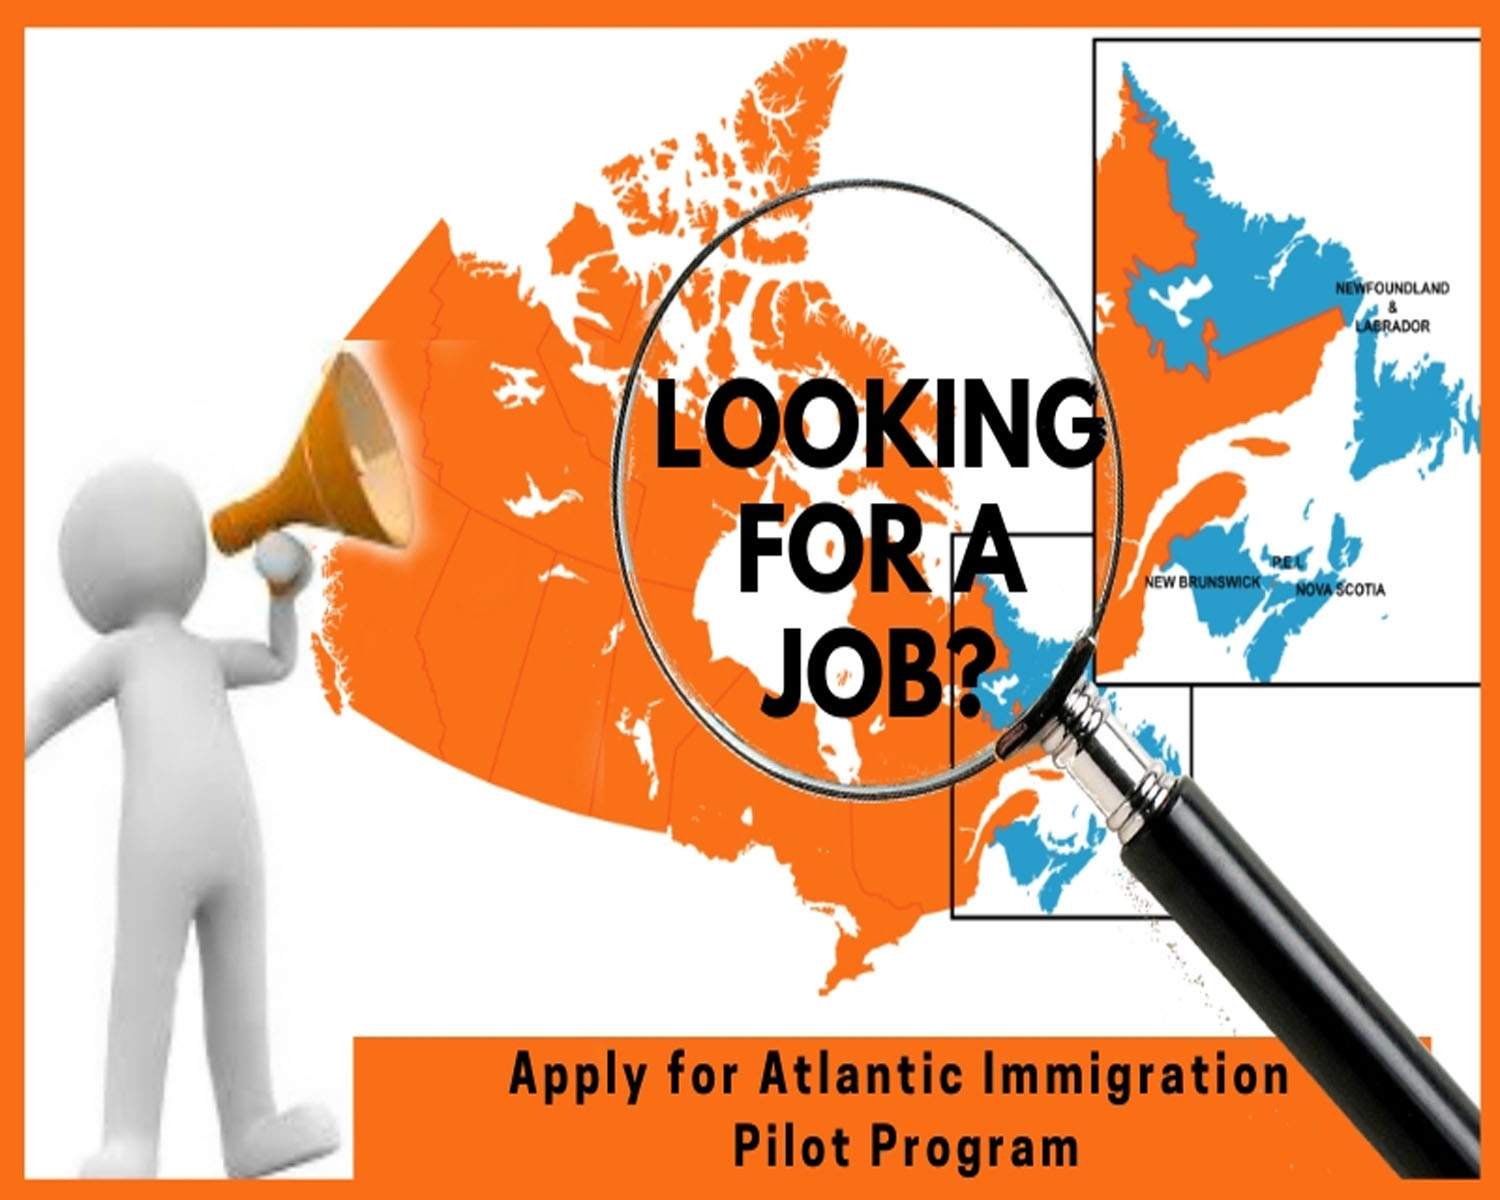 Atlantic Immigration Pilot Immigration Program: How to Apply for the Same